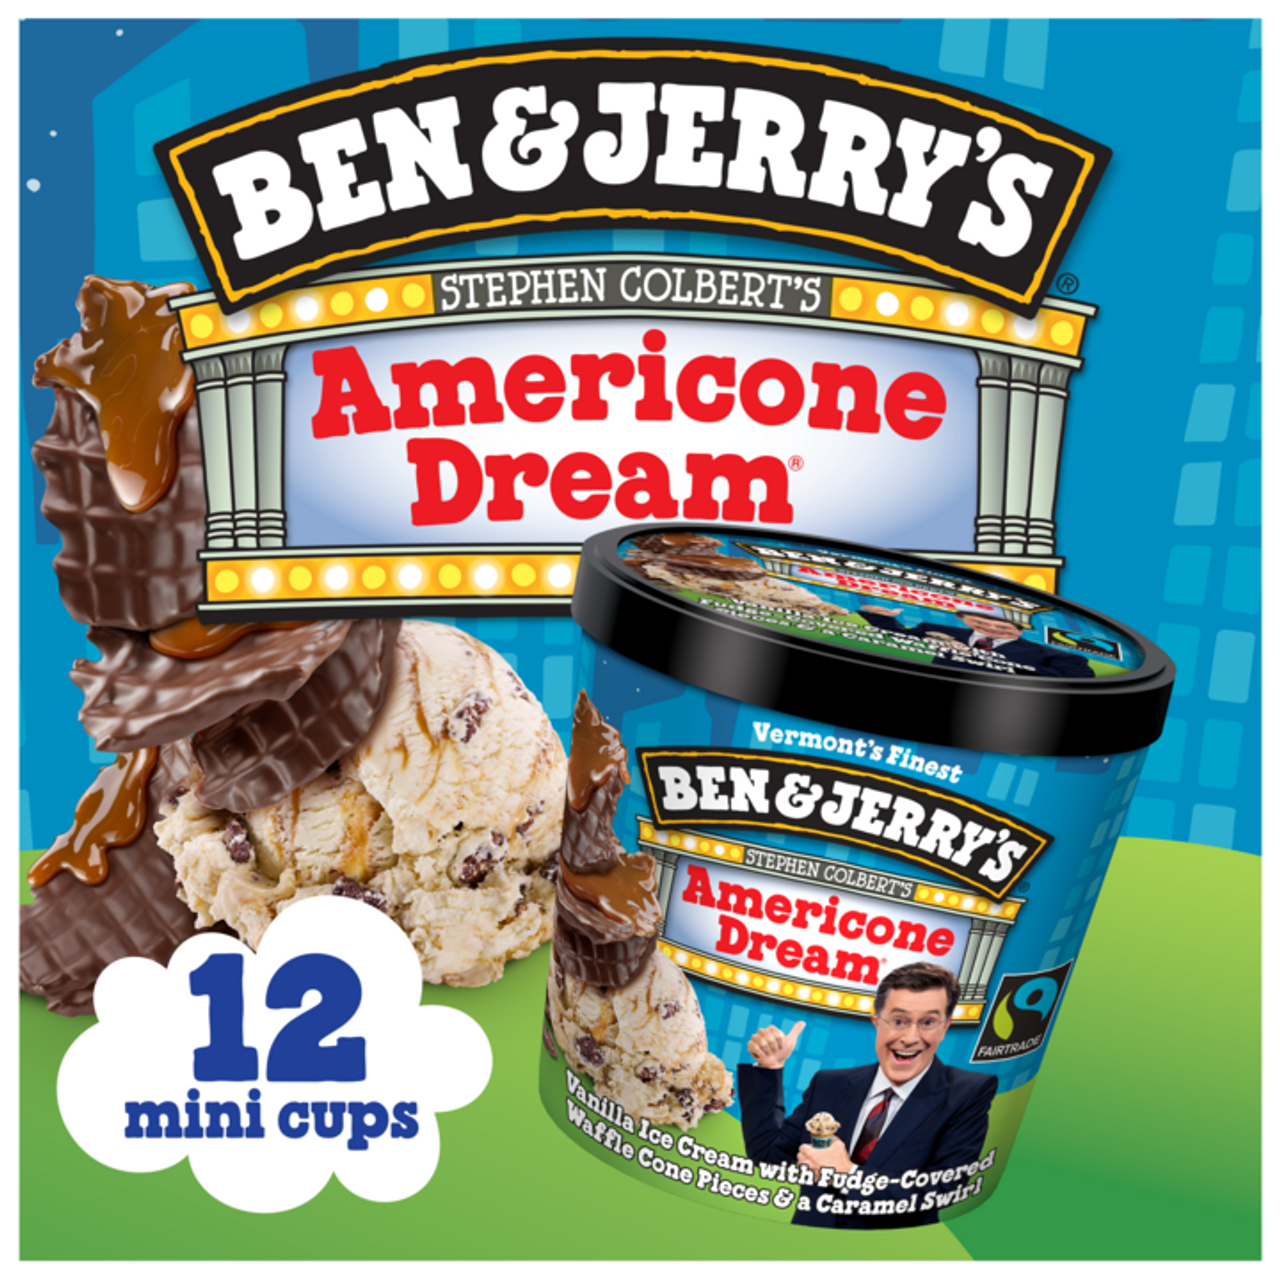 Ben Jerry S Americone Dream Stephen Colbert S Ice Cream Cups 12 Count Rocketdsd That purpose is to get up everyday, eat americone dream ice. ben jerry s americone dream stephen colbert s ice cream cups 12 count